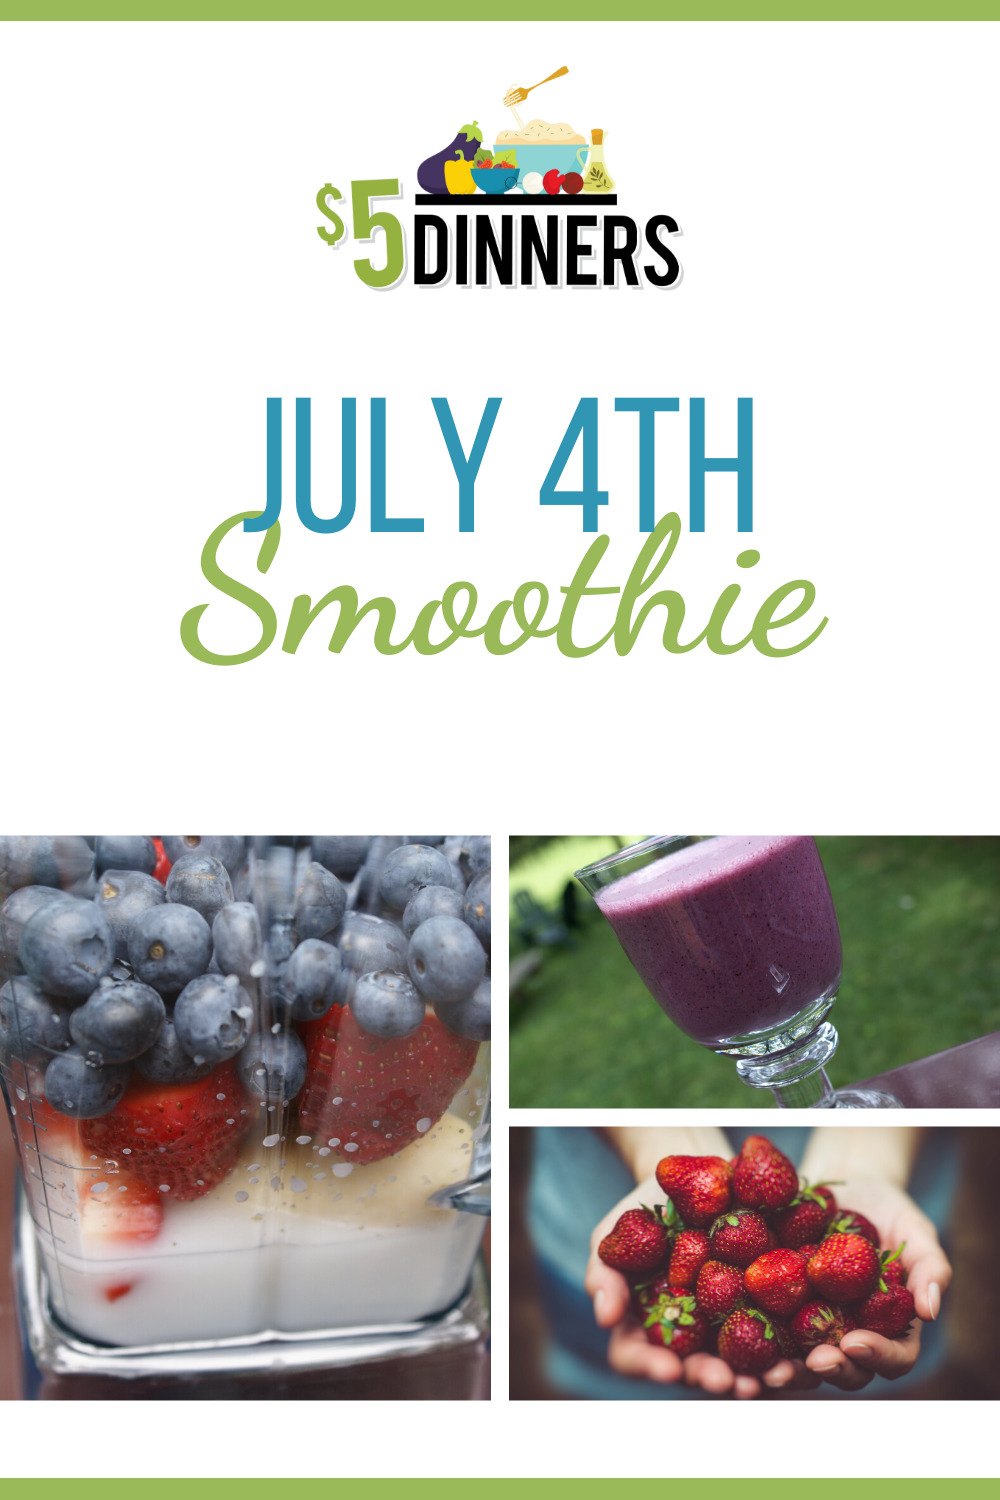 july 4th smoothie